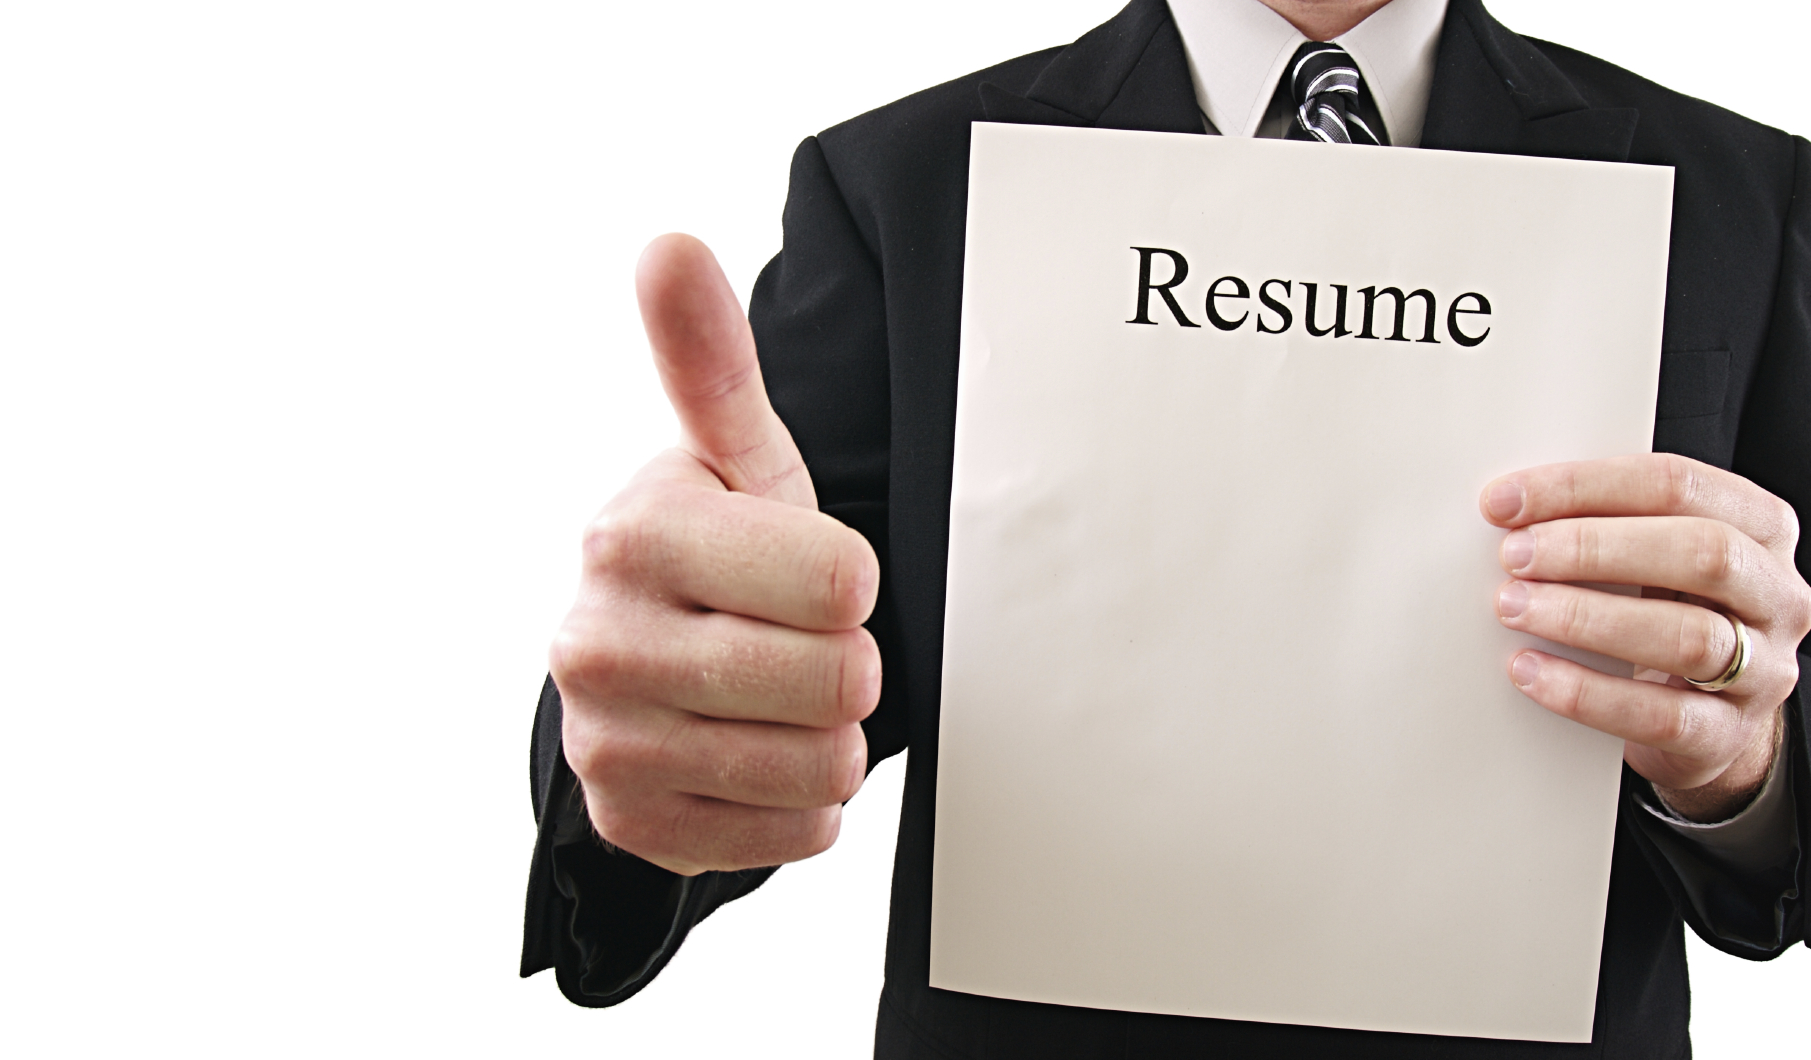 resume preparation workshop resume career summary resume writing workshop learn to wirte ampinzz ipnodns ru resume writing workshop learn to wirte winning resumes